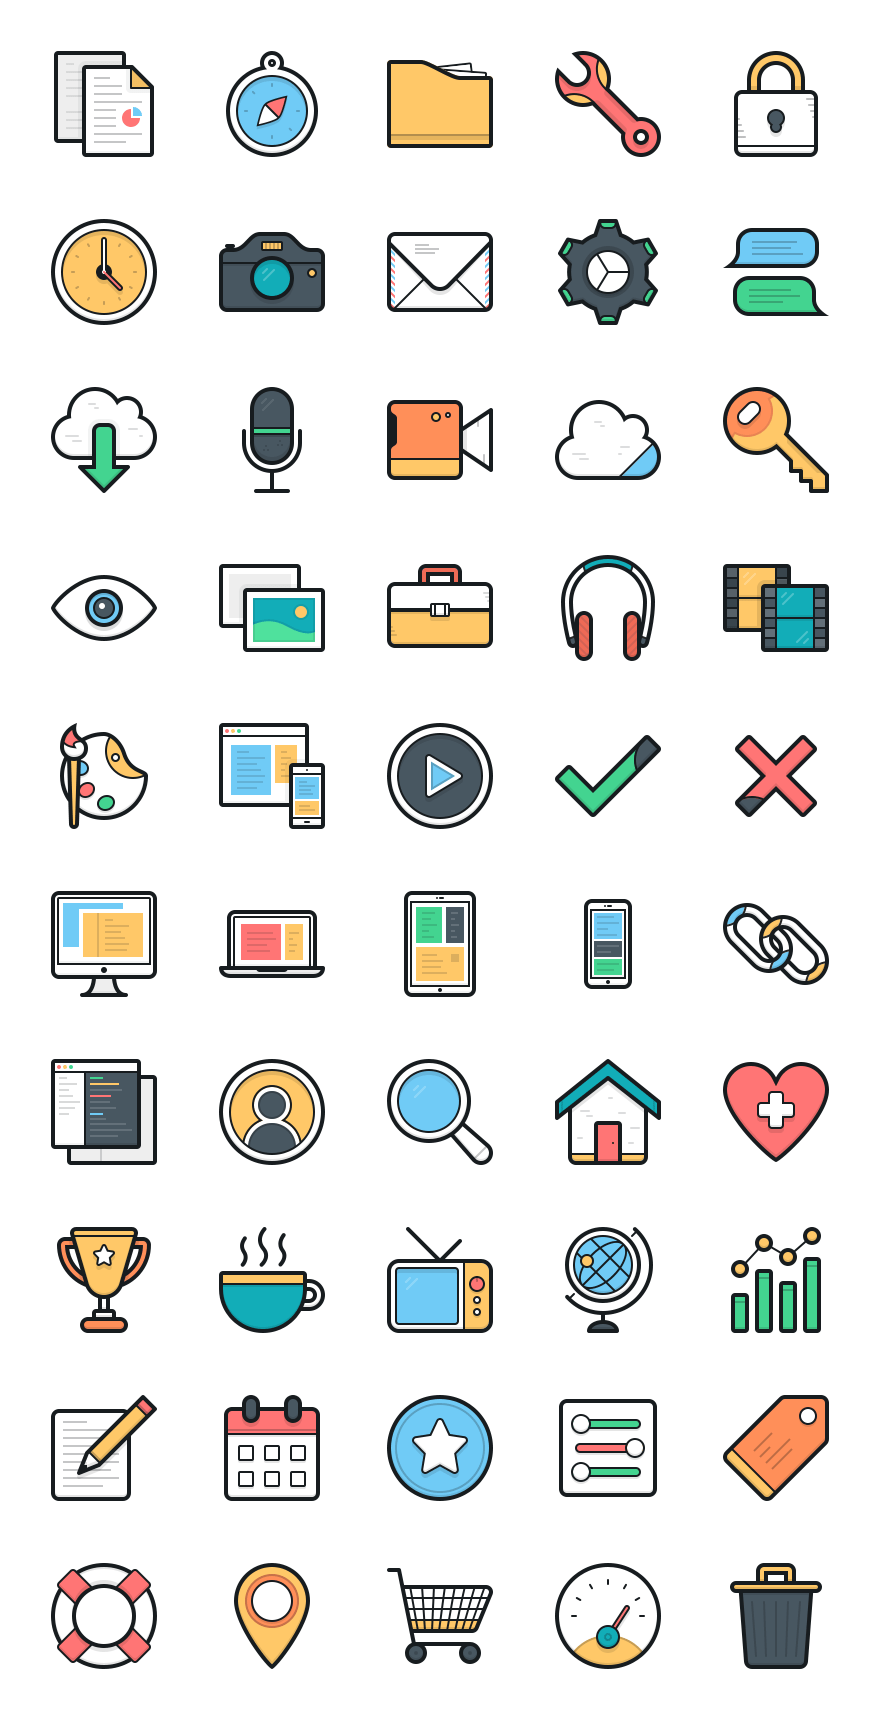 FREE Icon Pack by Layerform Design Co